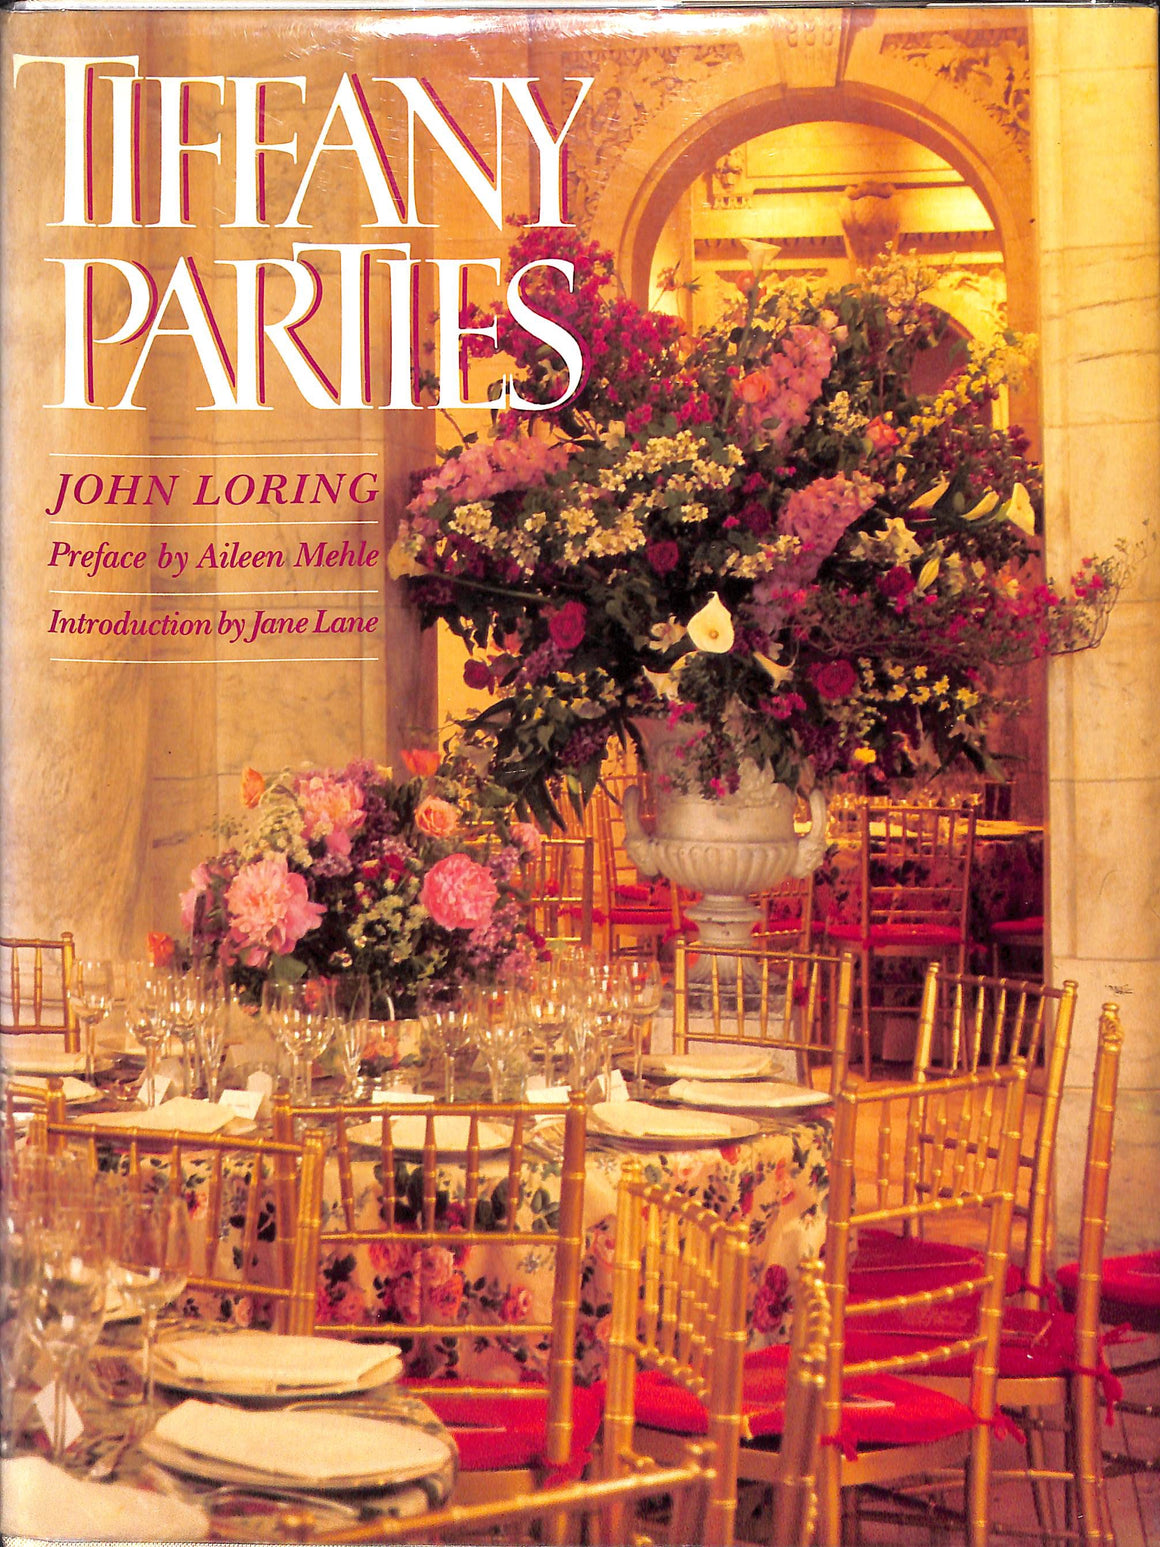 Tiffany Parties by John Loring